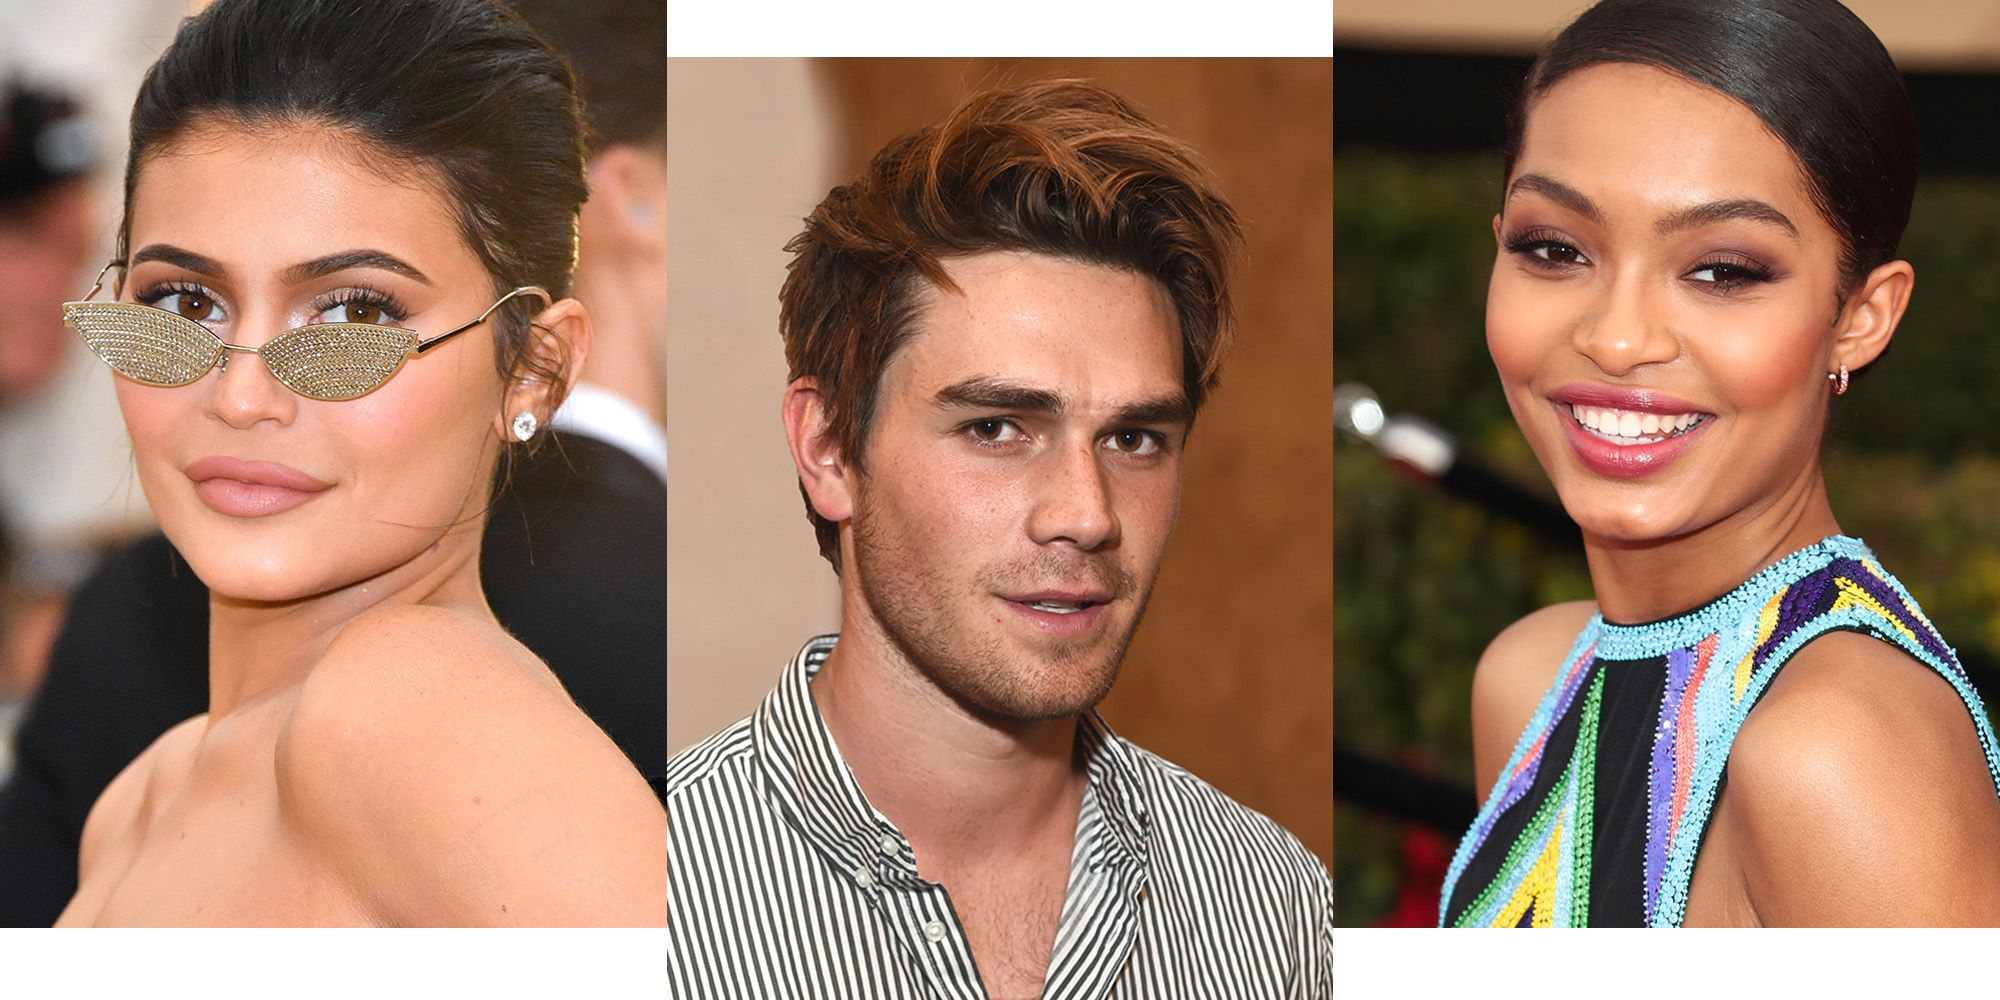 b5d6707af799 Celebrities Under 21 - Celebrities Who Can't Legally Drink